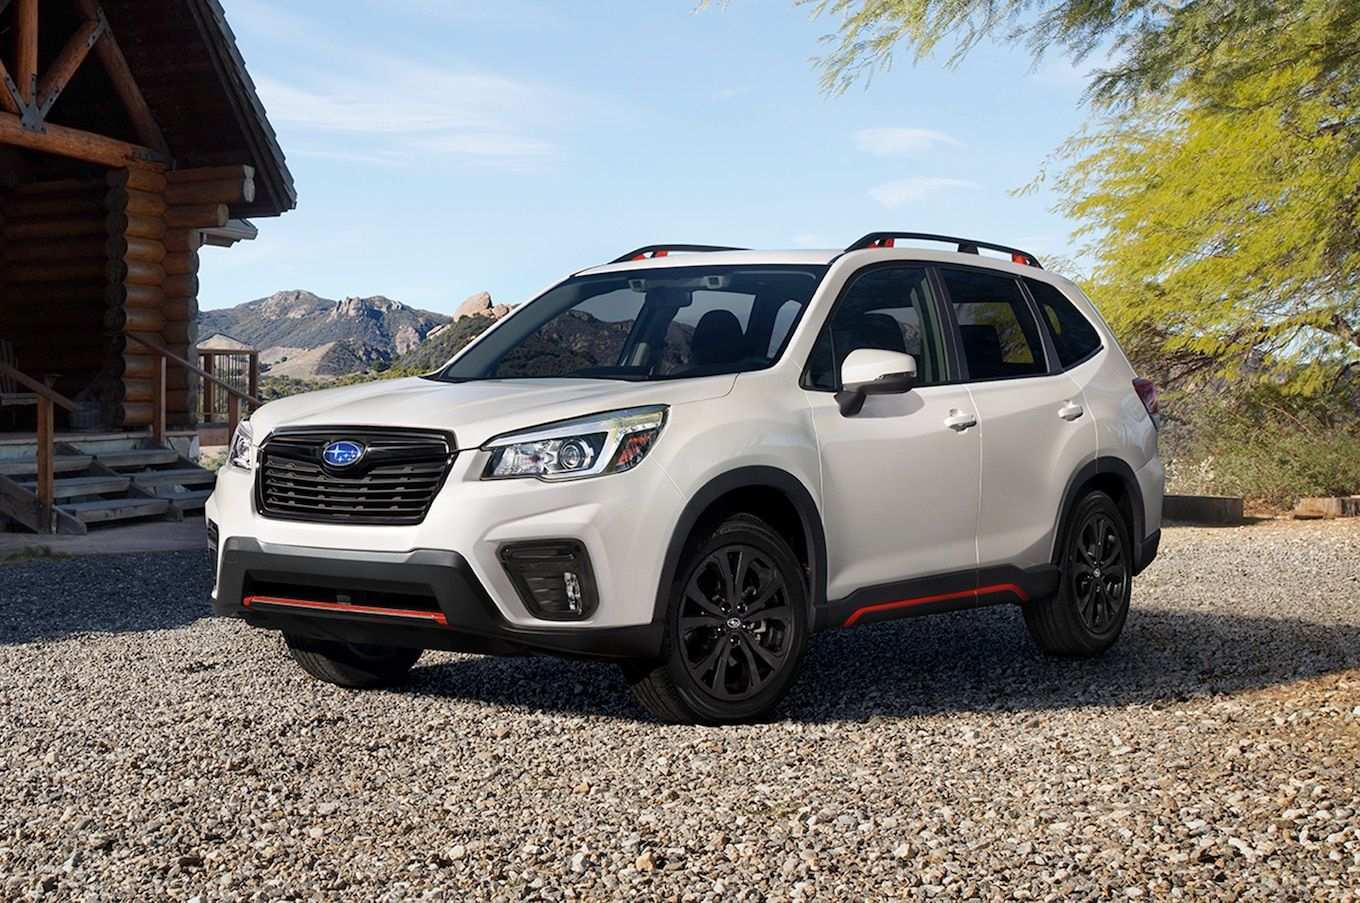 85 Best Review 2019 Subaru Viziv Pickup Ratings for 2019 Subaru Viziv Pickup